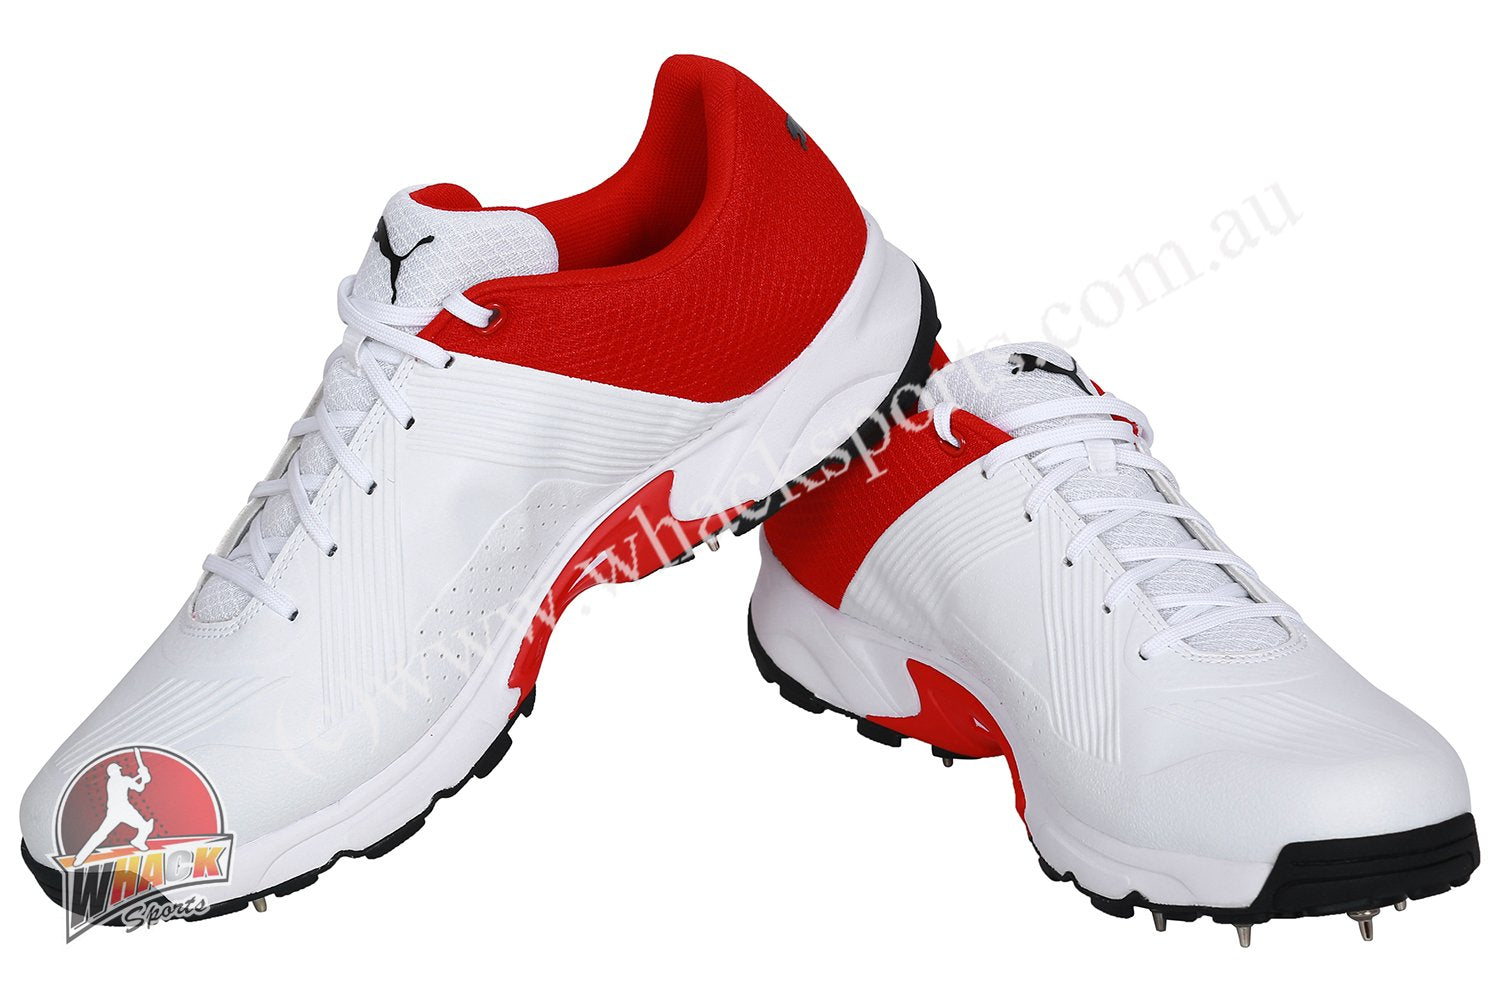 Puma One8 19.2 Cricket Shoes Steel Spikes